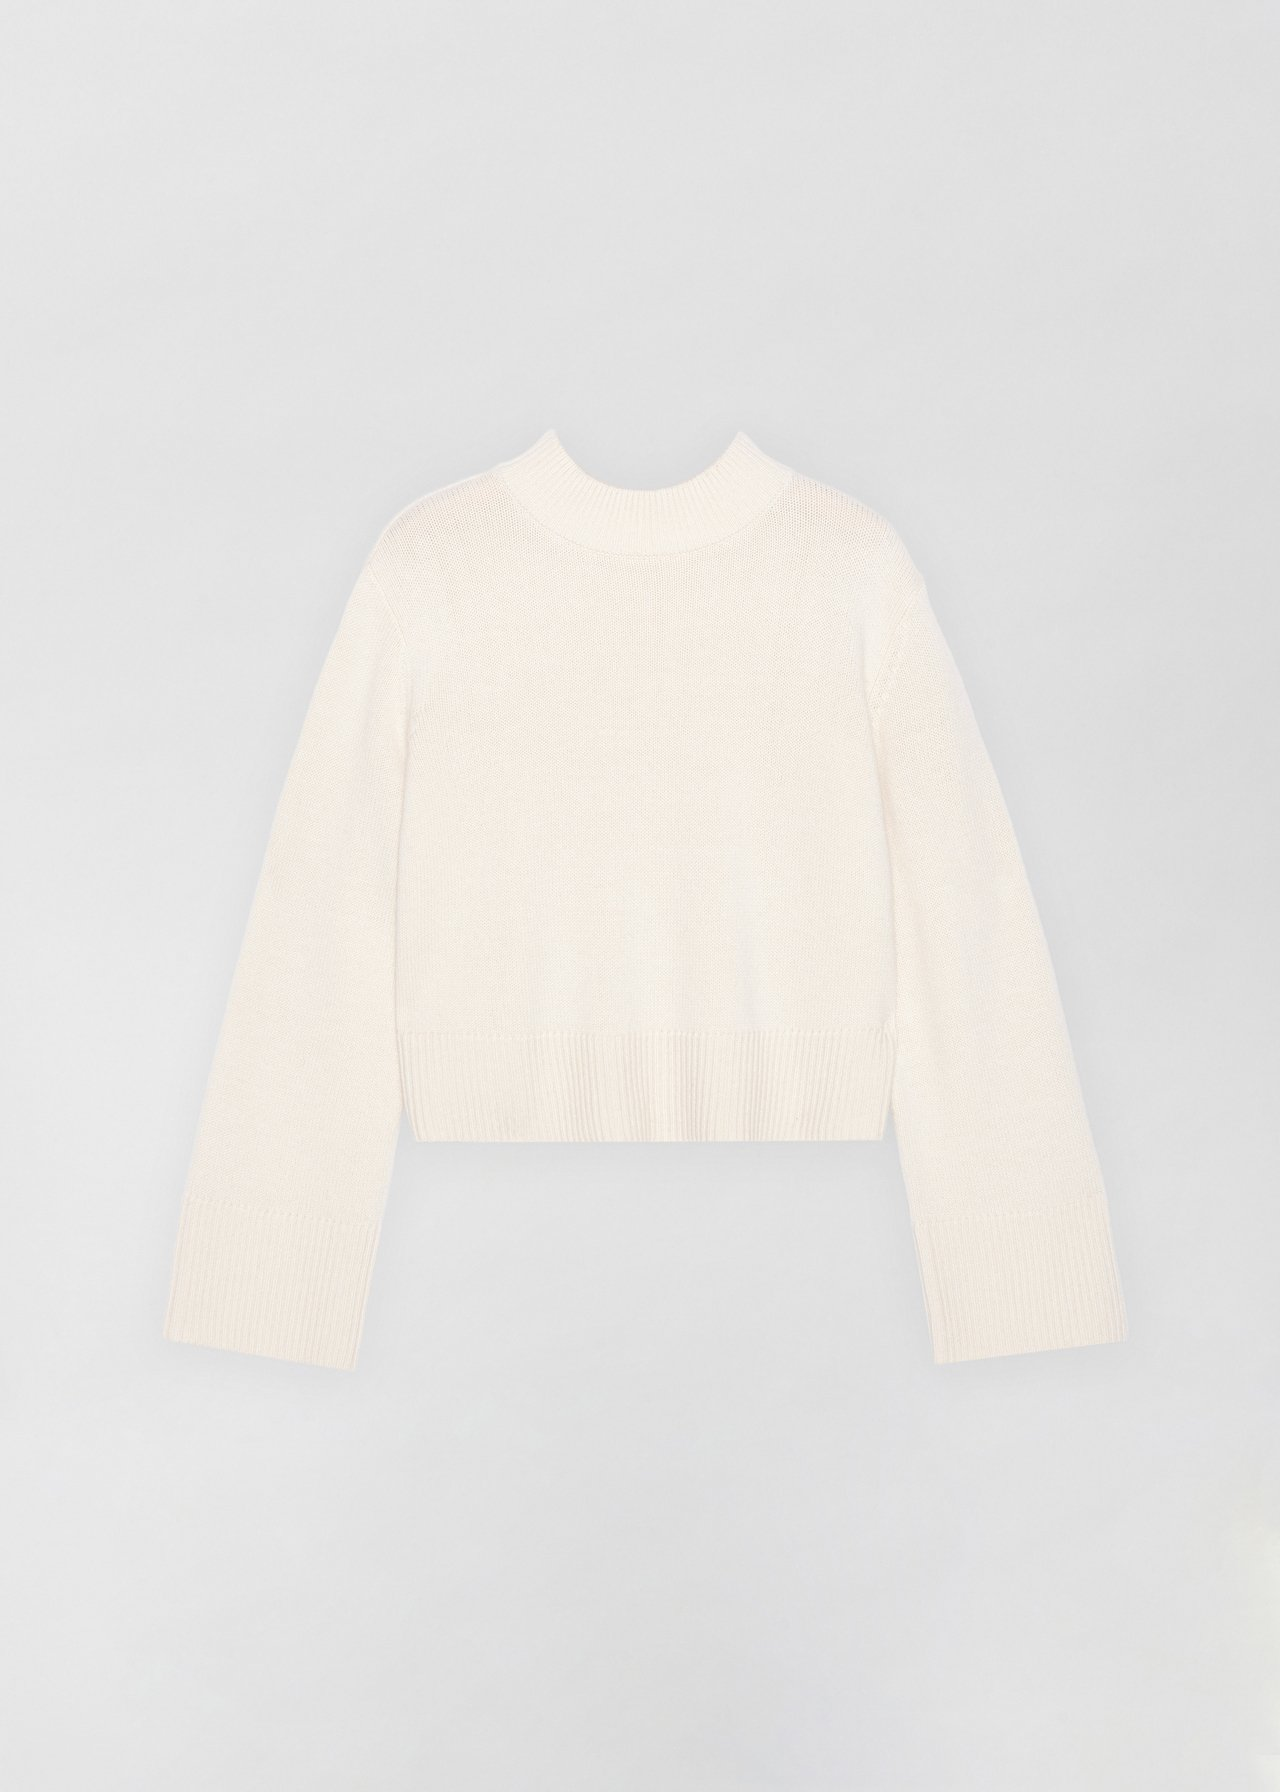 Boxy Crew Neck Sweater - Dove Grey in Ivory by Co Collections